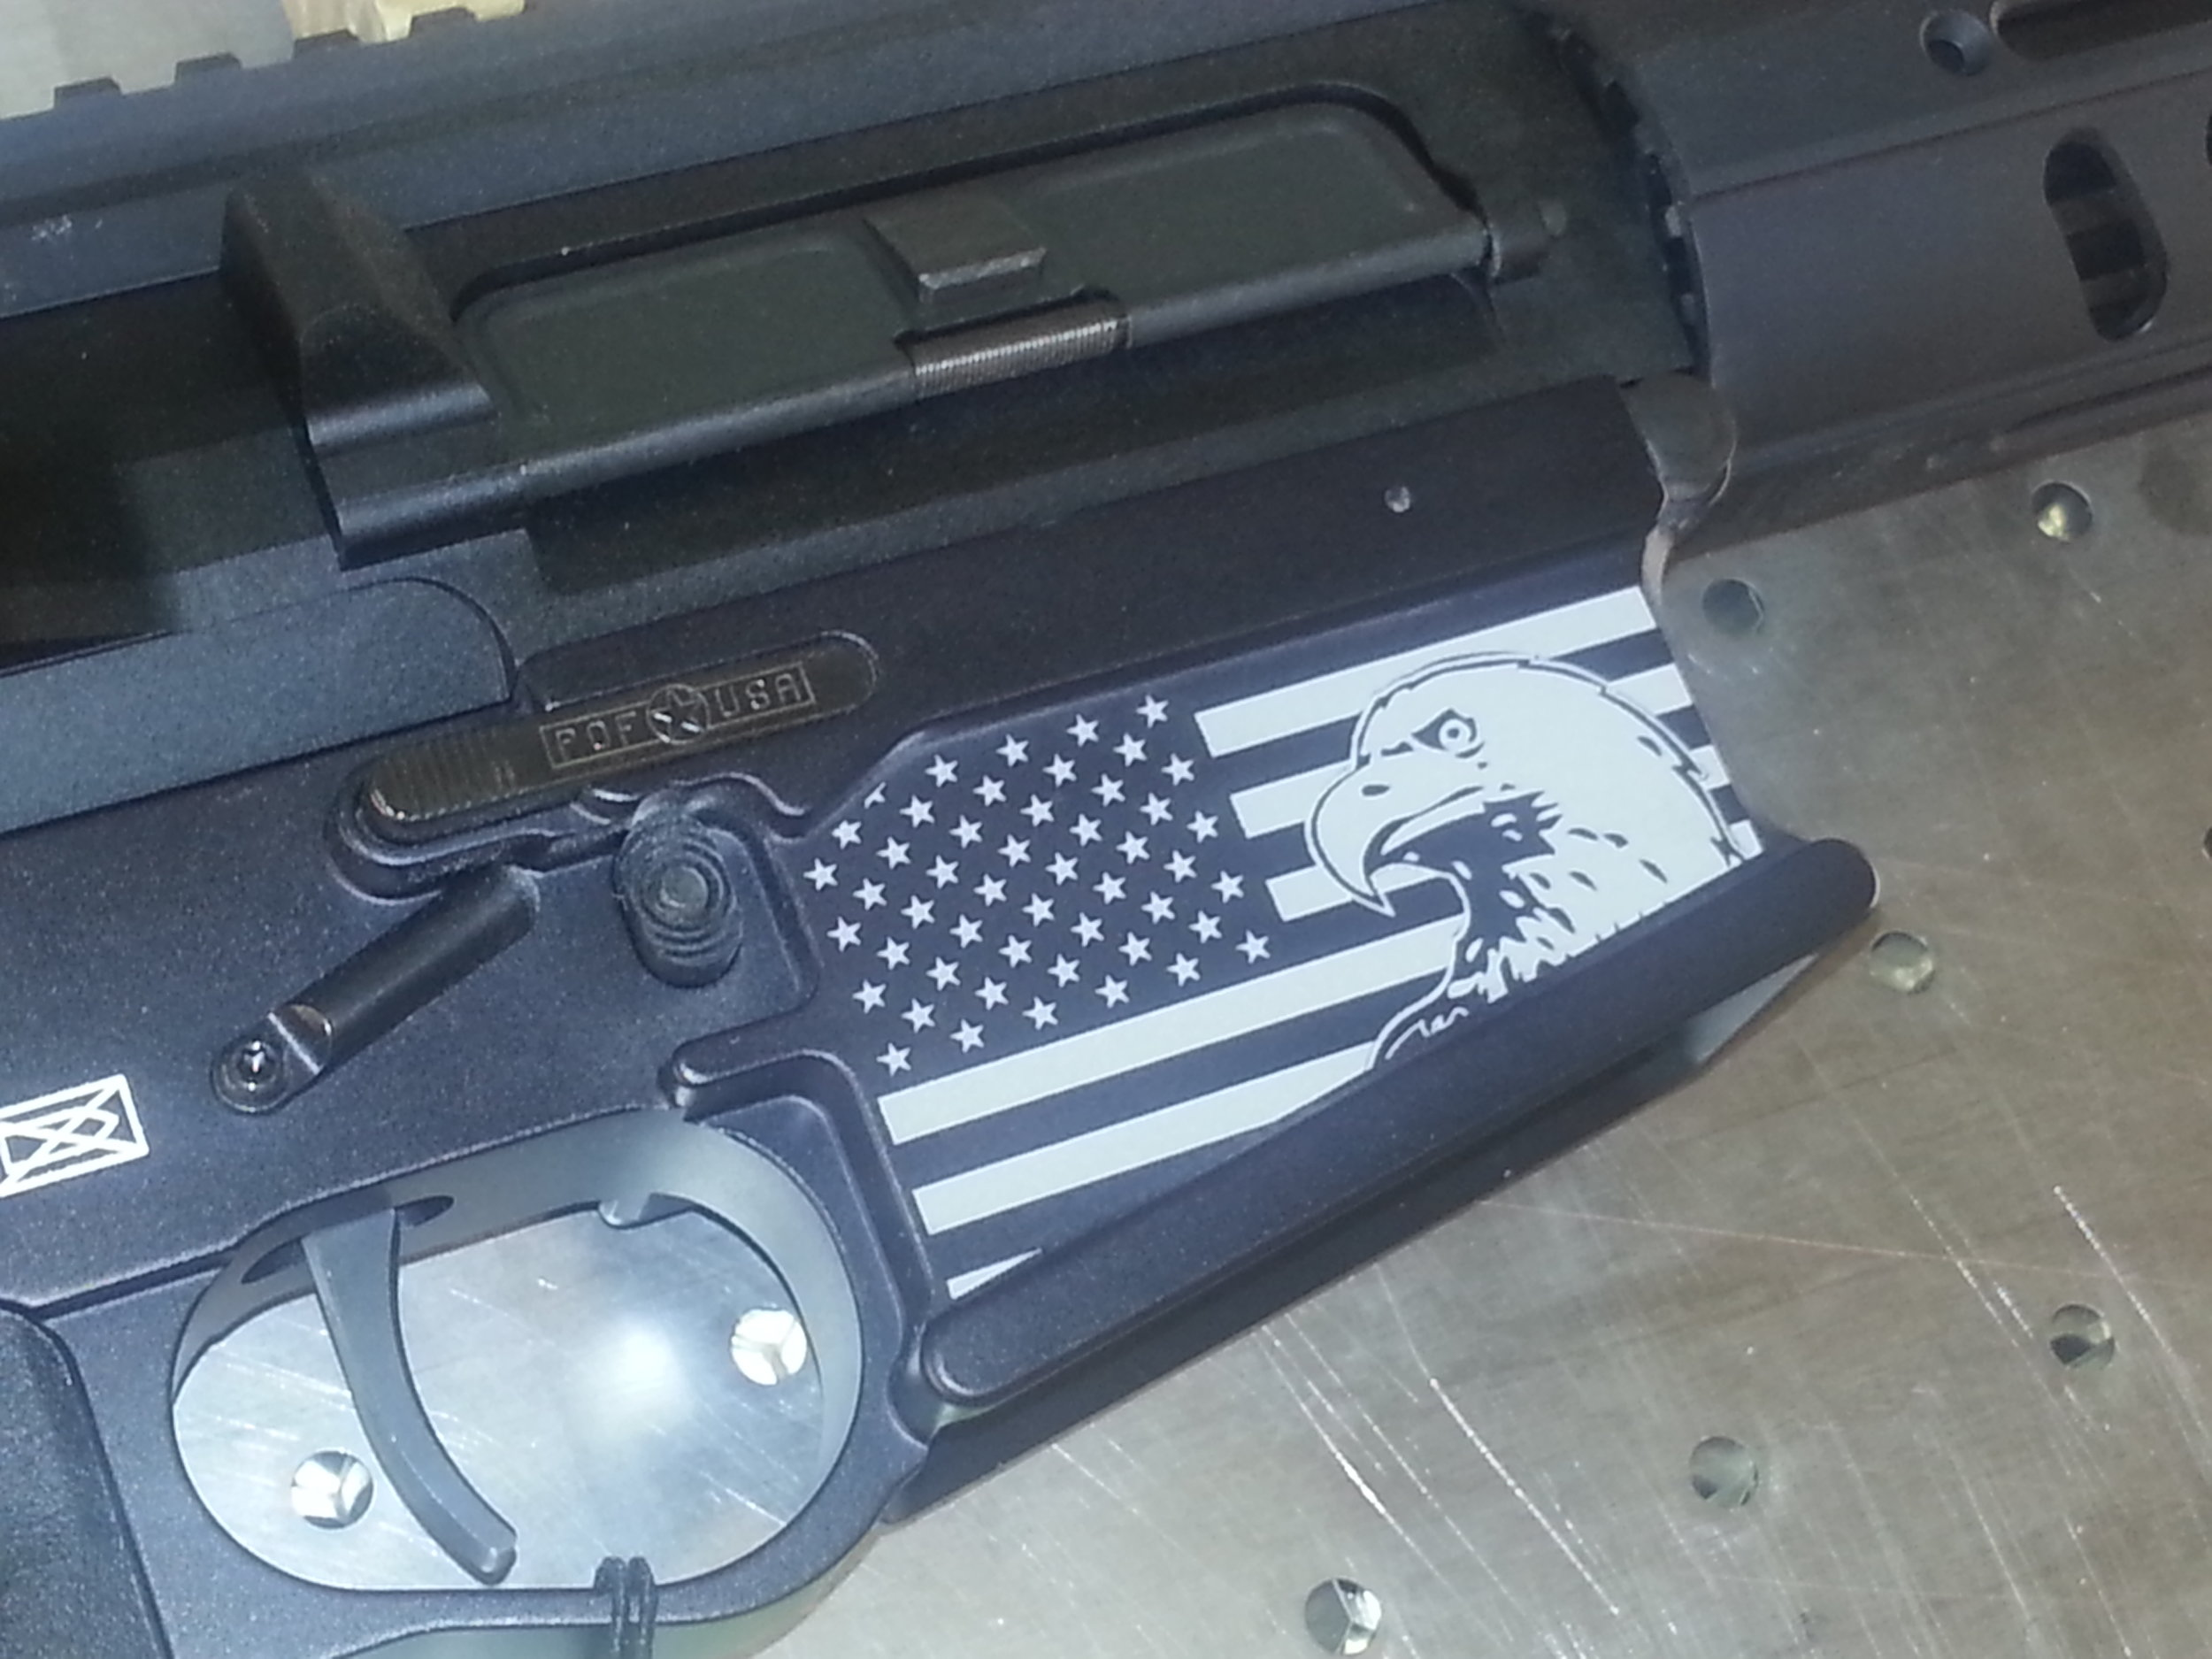 Custom Engraved Assault Rifle - Personalized Assault Rifle - Firearm Projects from Engrave It Houston